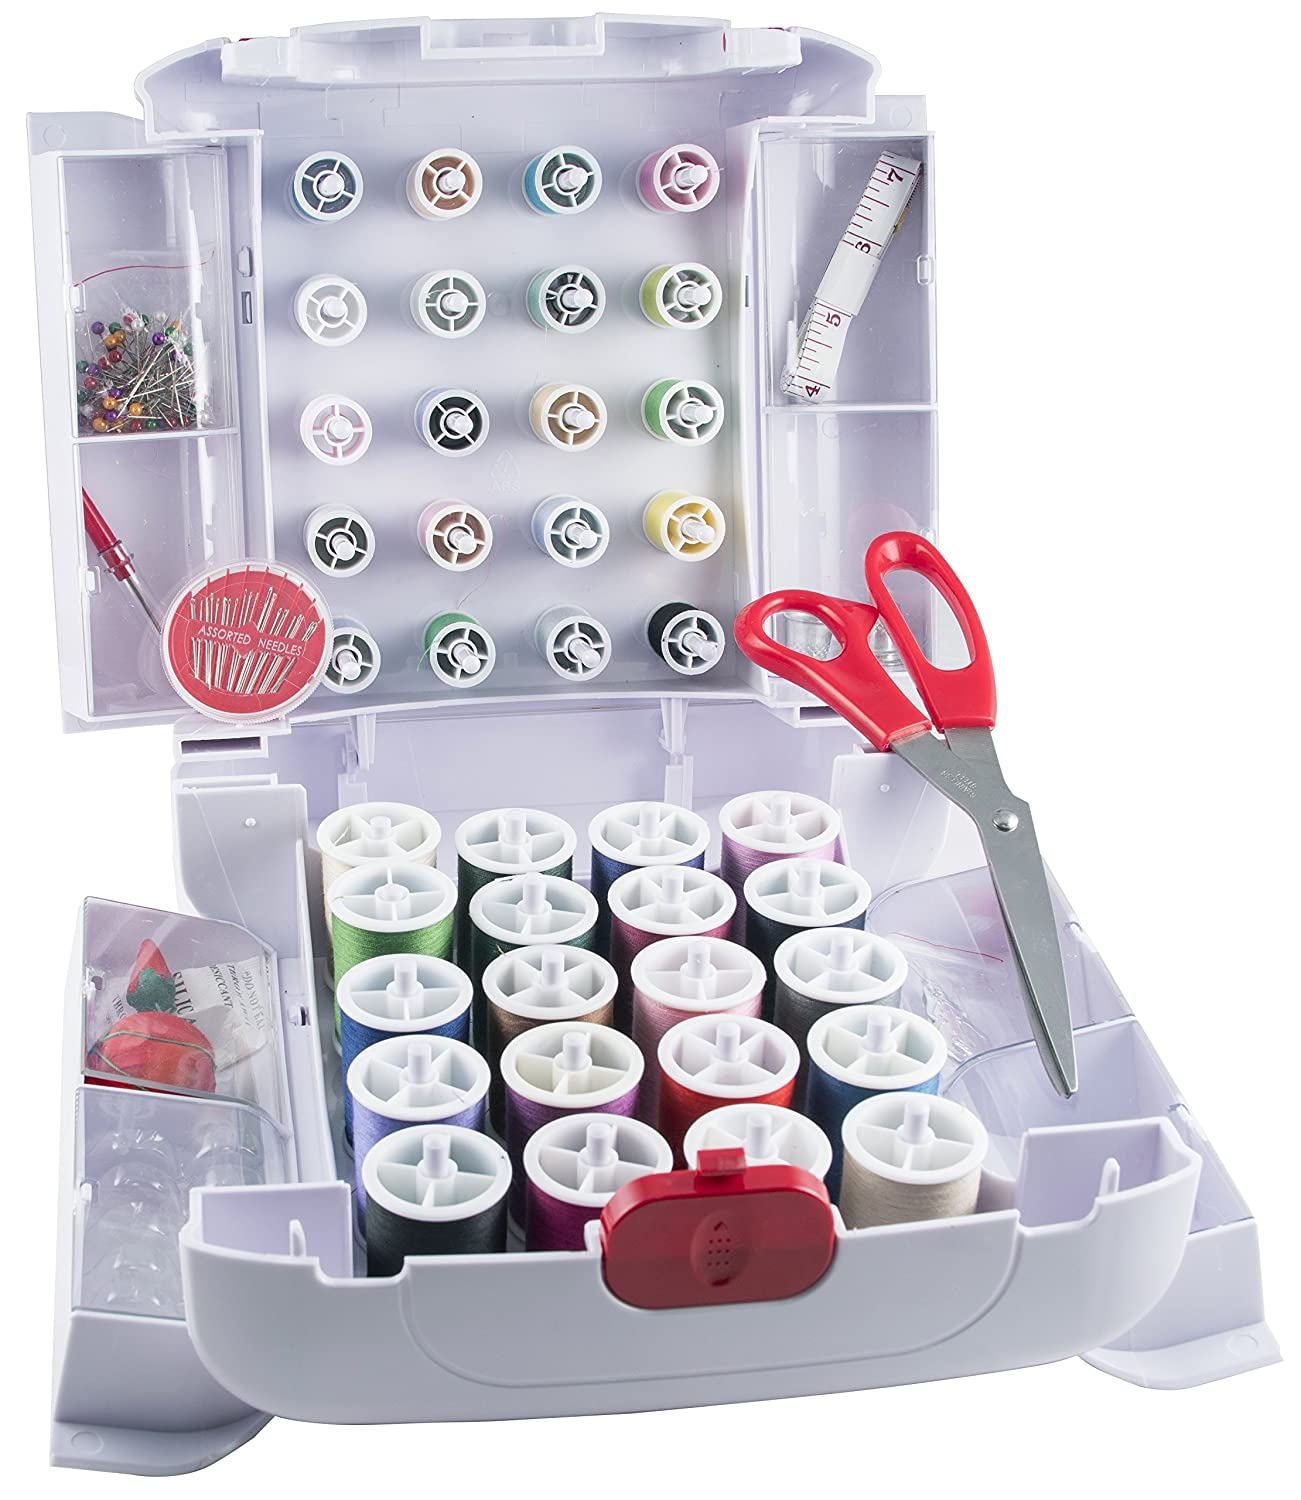 Singer Sew Essentials Storage System, 166-Piece 01661